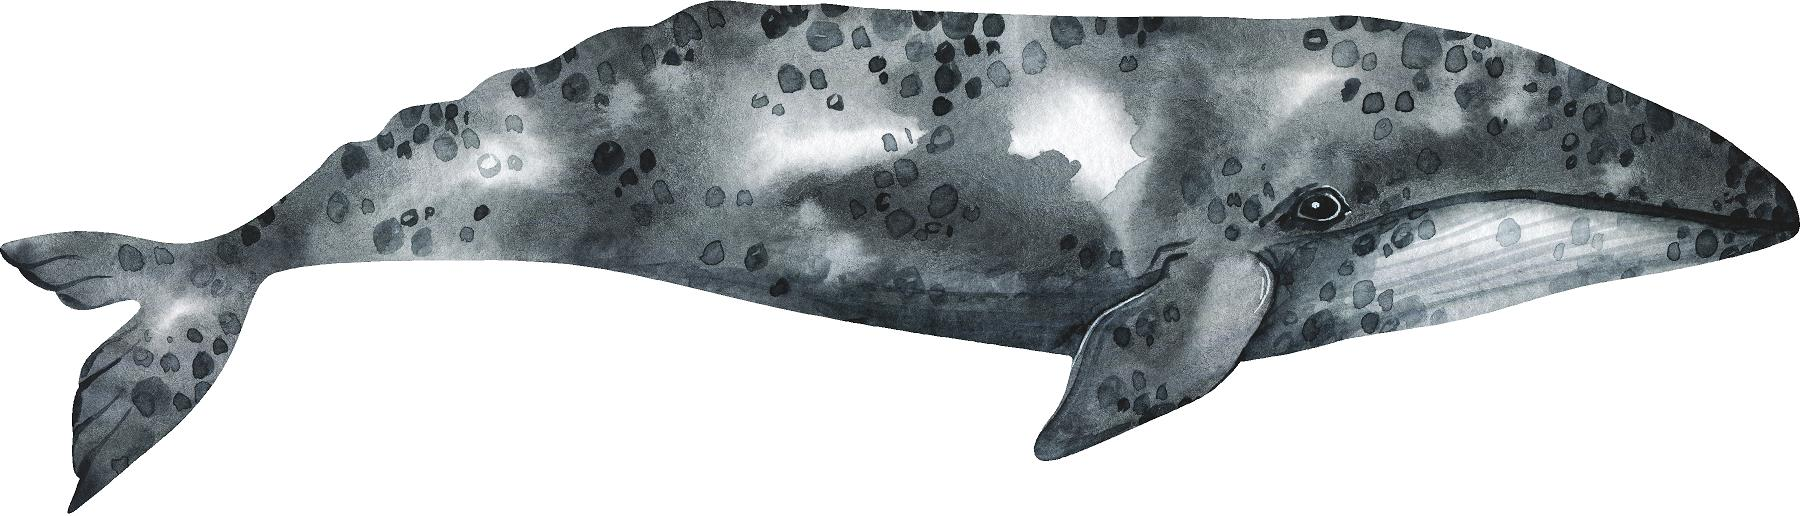 Gray Whale #1 Wall Decal Removable Ocean Deep Sea Animal Fabric Vinyl Wall Sticker | DecalBaby